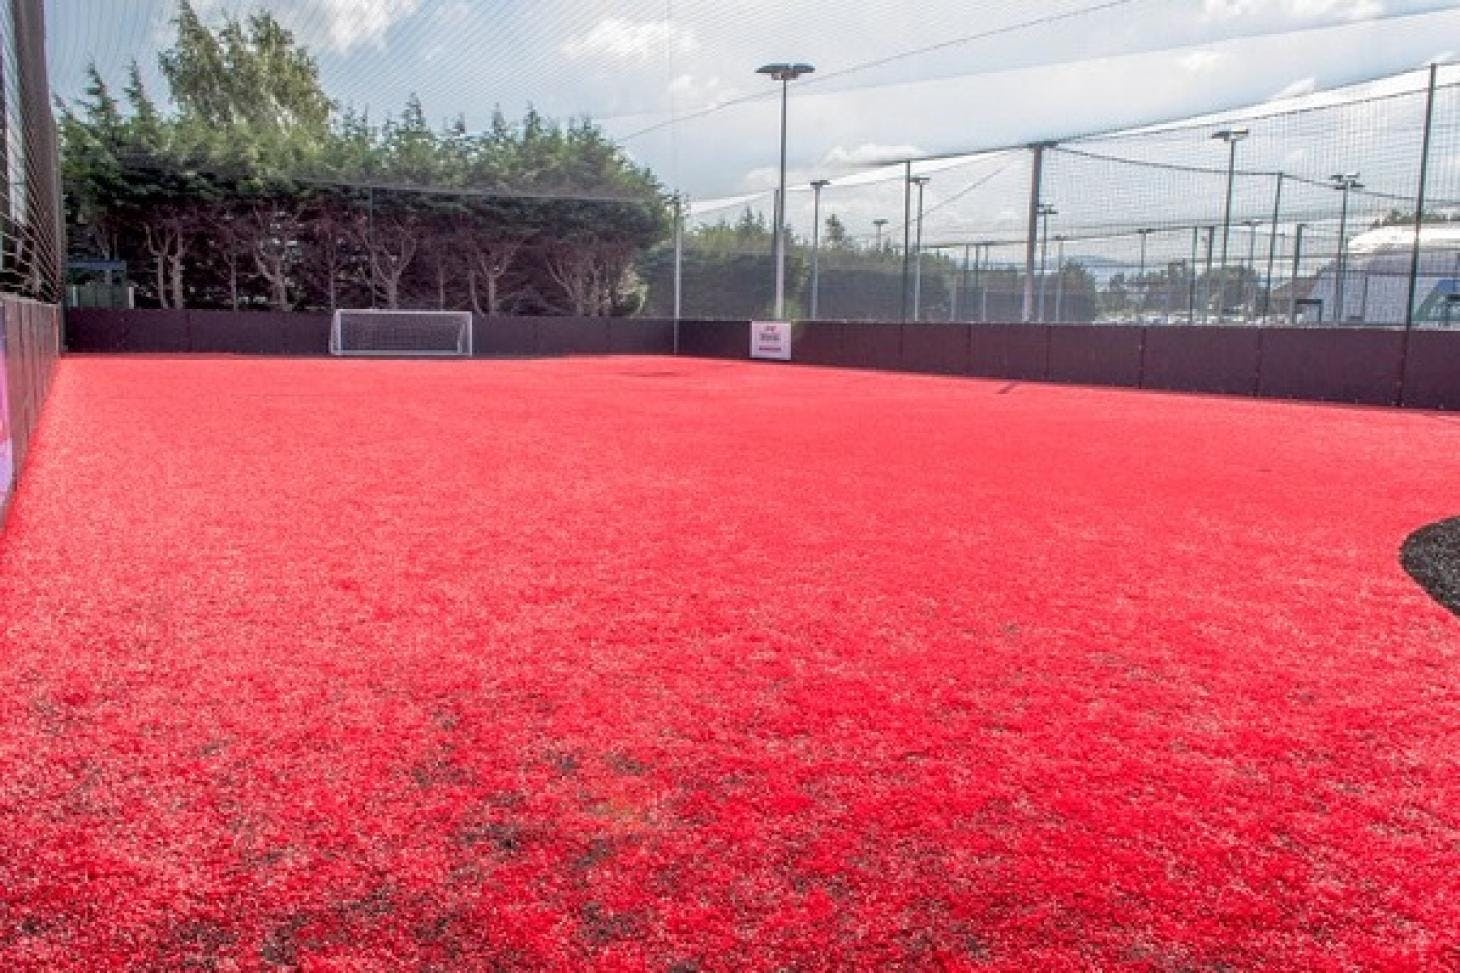 Powerleague Spawell 5 a side | 3G Astroturf football pitch